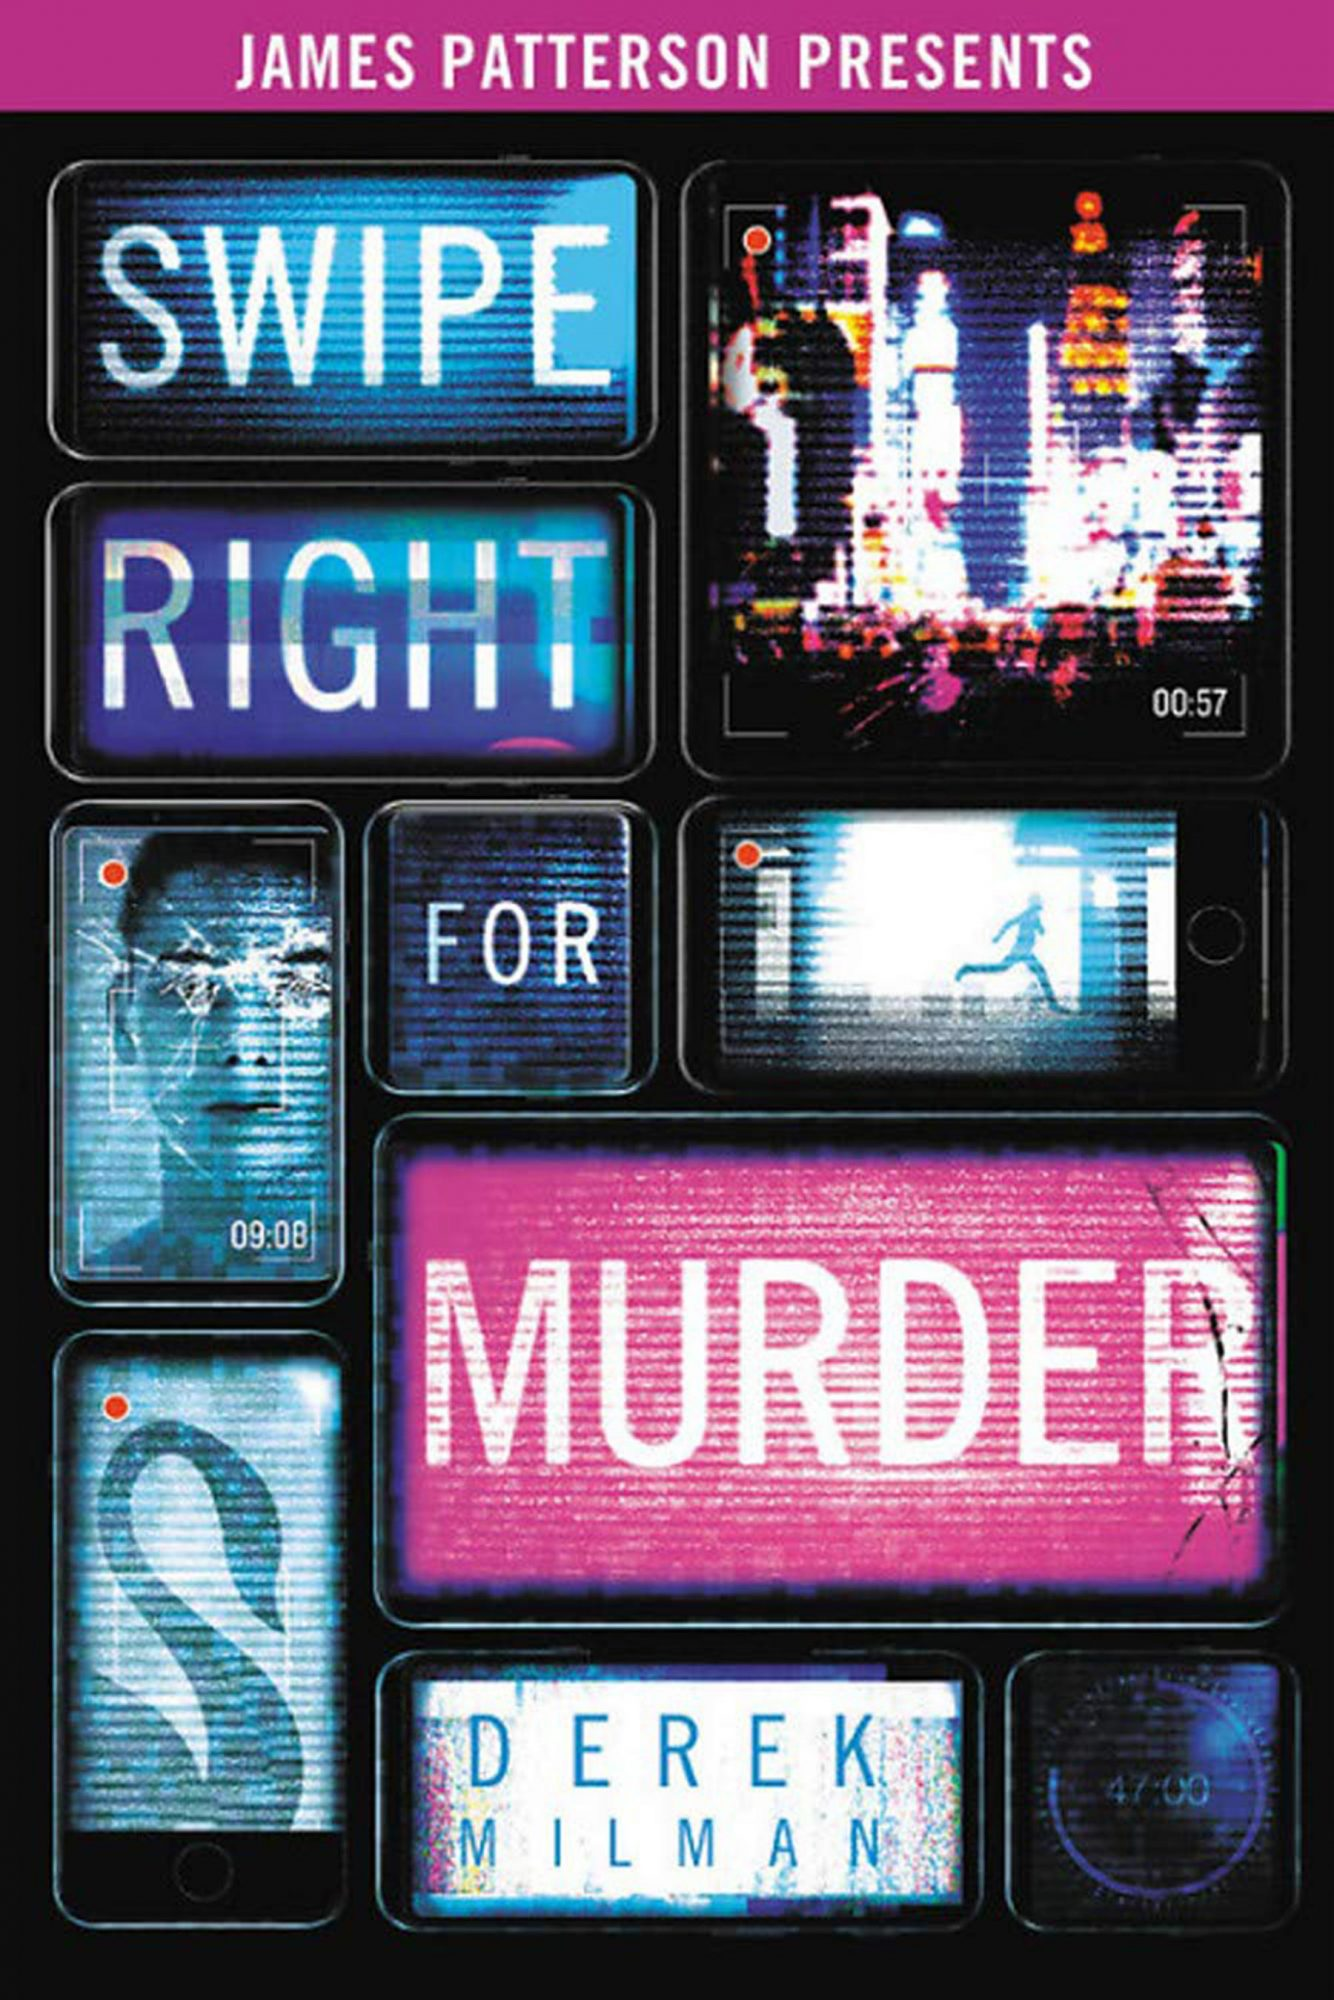 Swipe Right for Murder, by Derek Milman